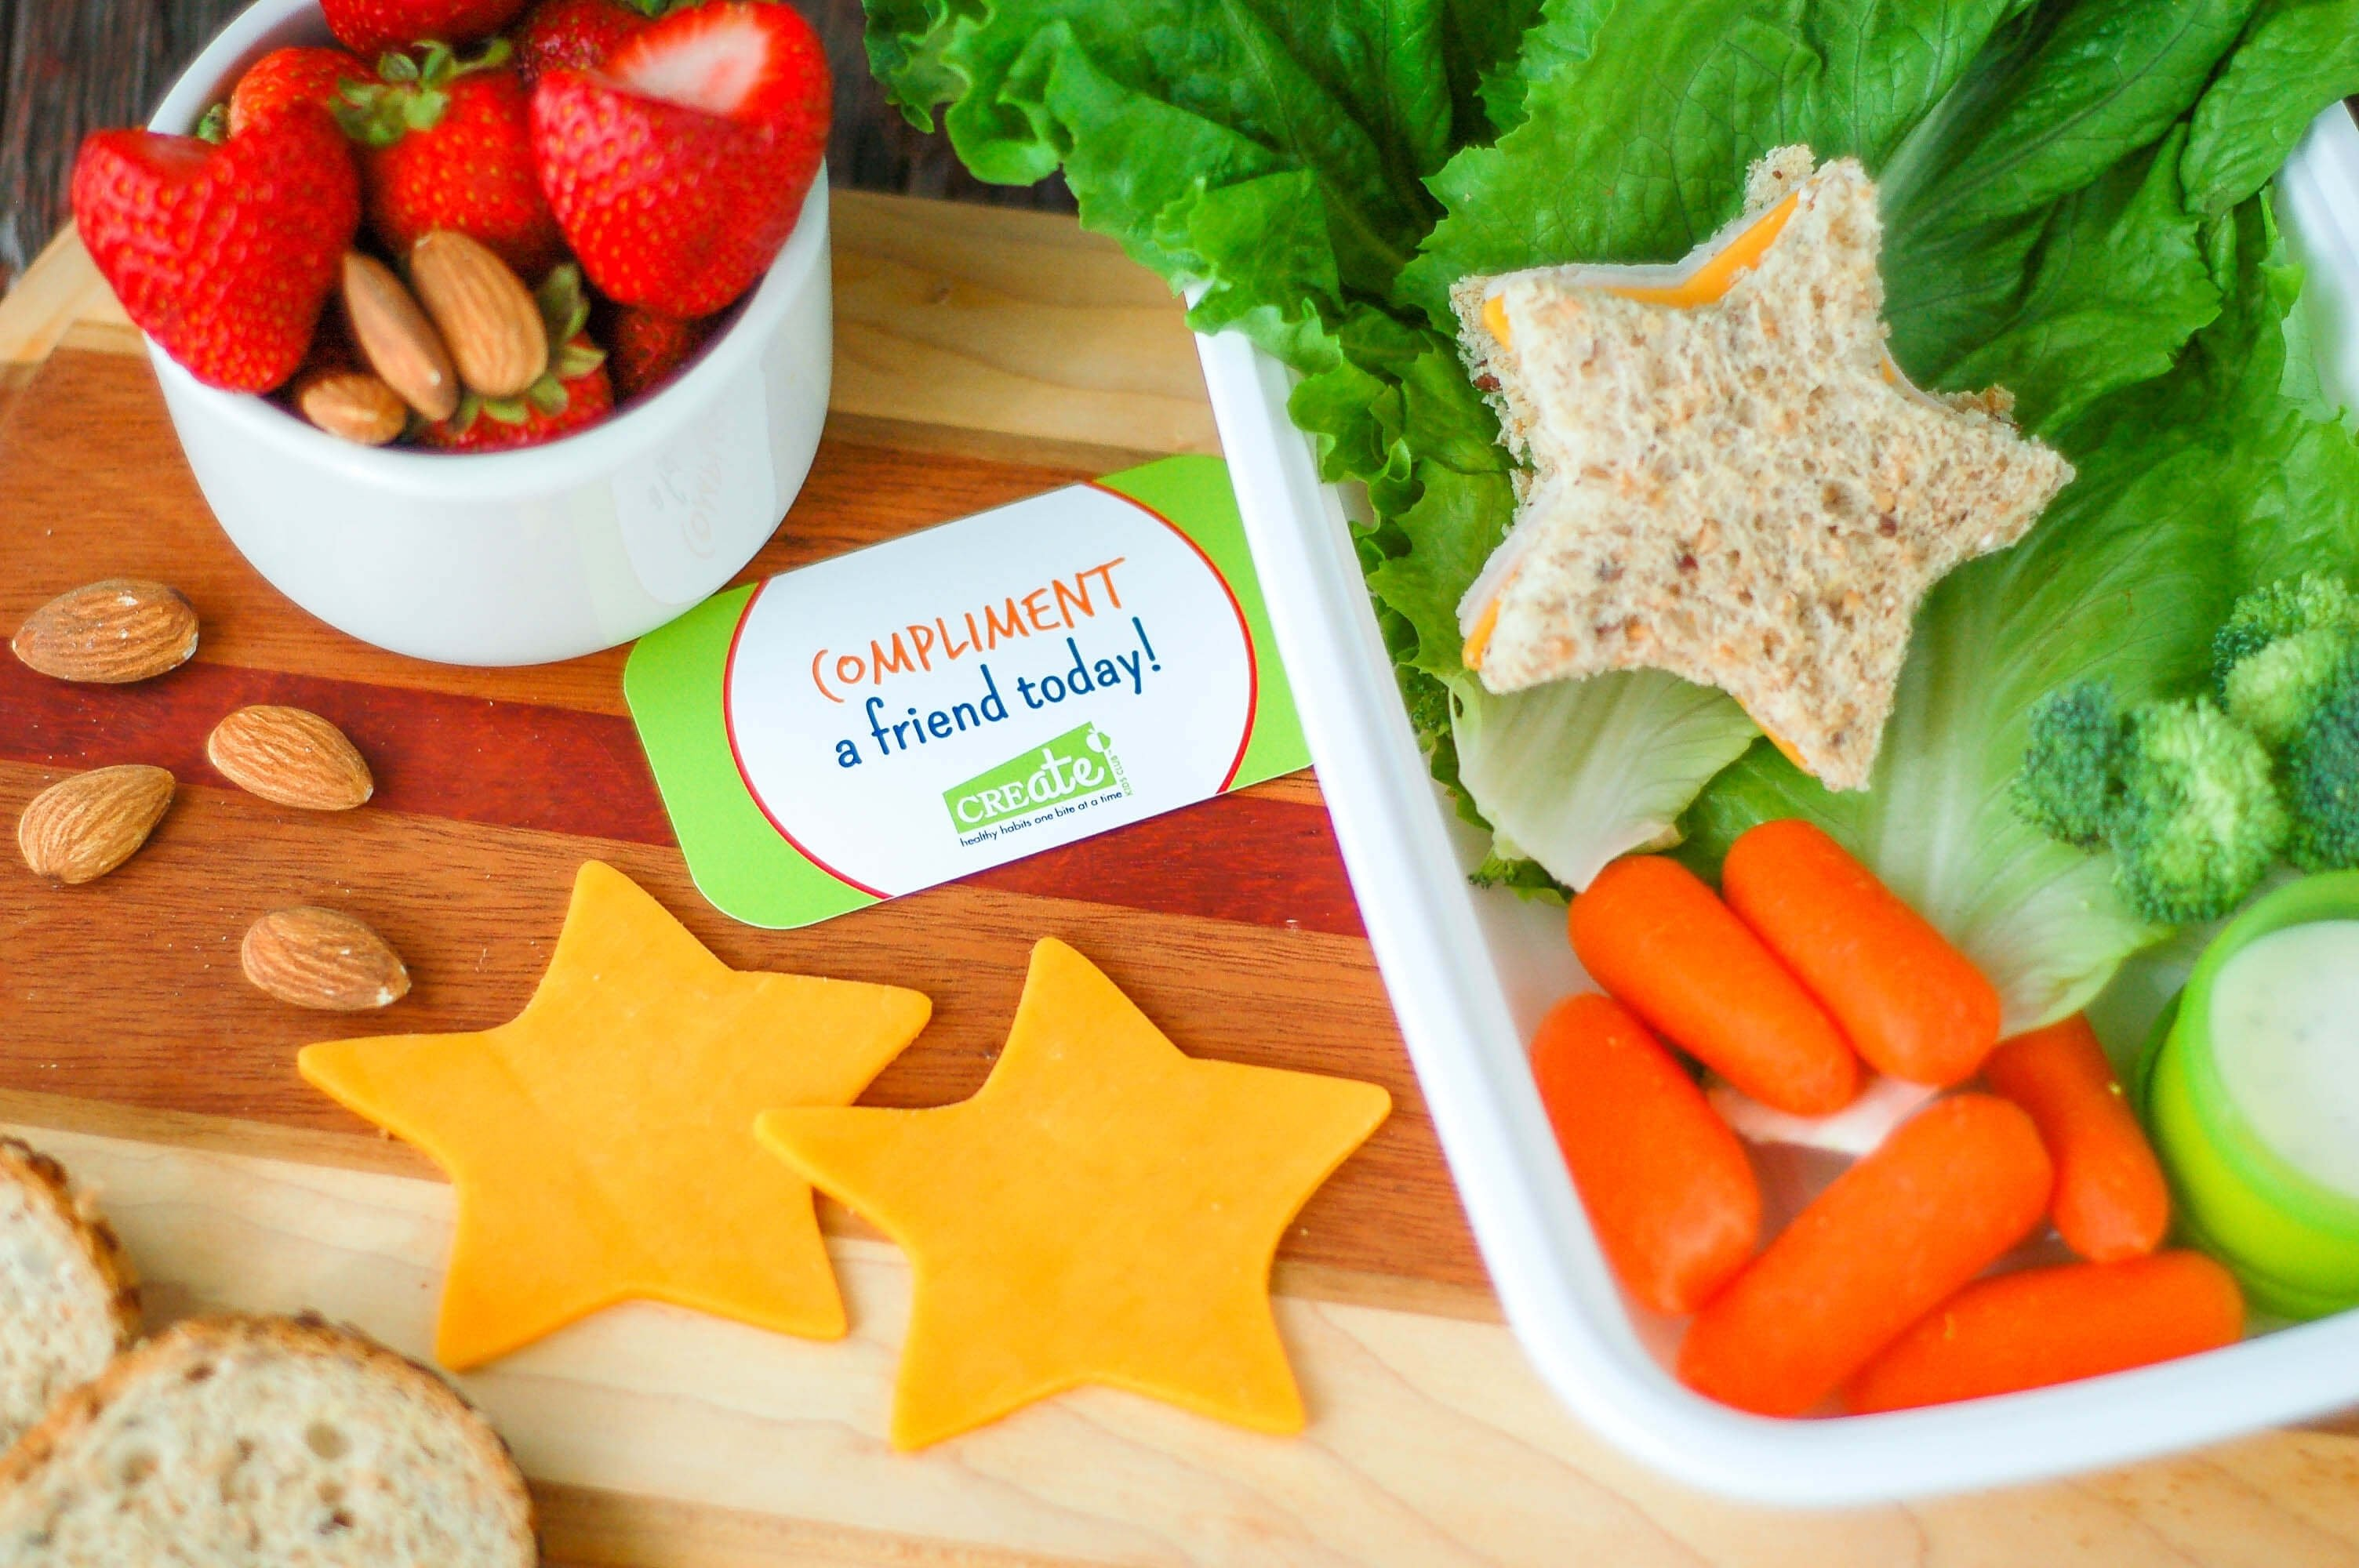 10 Most Popular Healthy Kid Lunch Ideas For School healthy school lunch ideas healthy lunchbox ideas create kids club 1